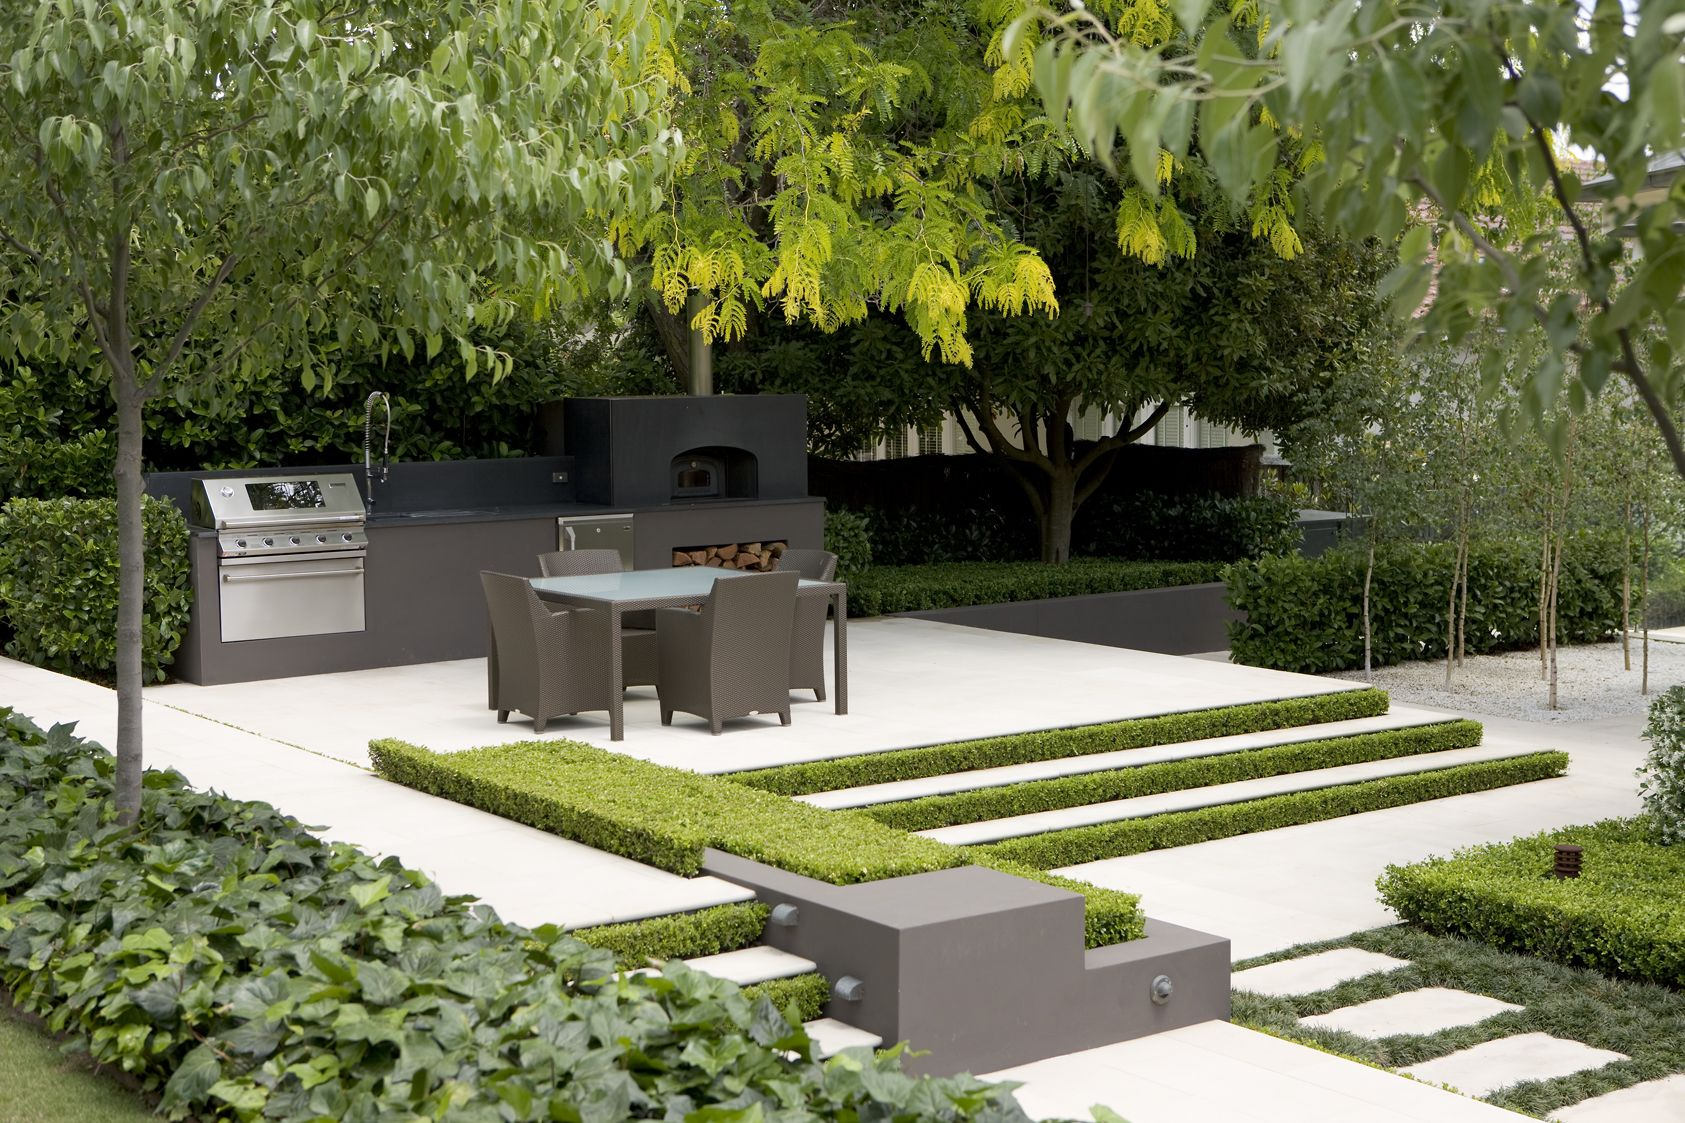 Peter fudge classic french garden landscape design and for French garden design